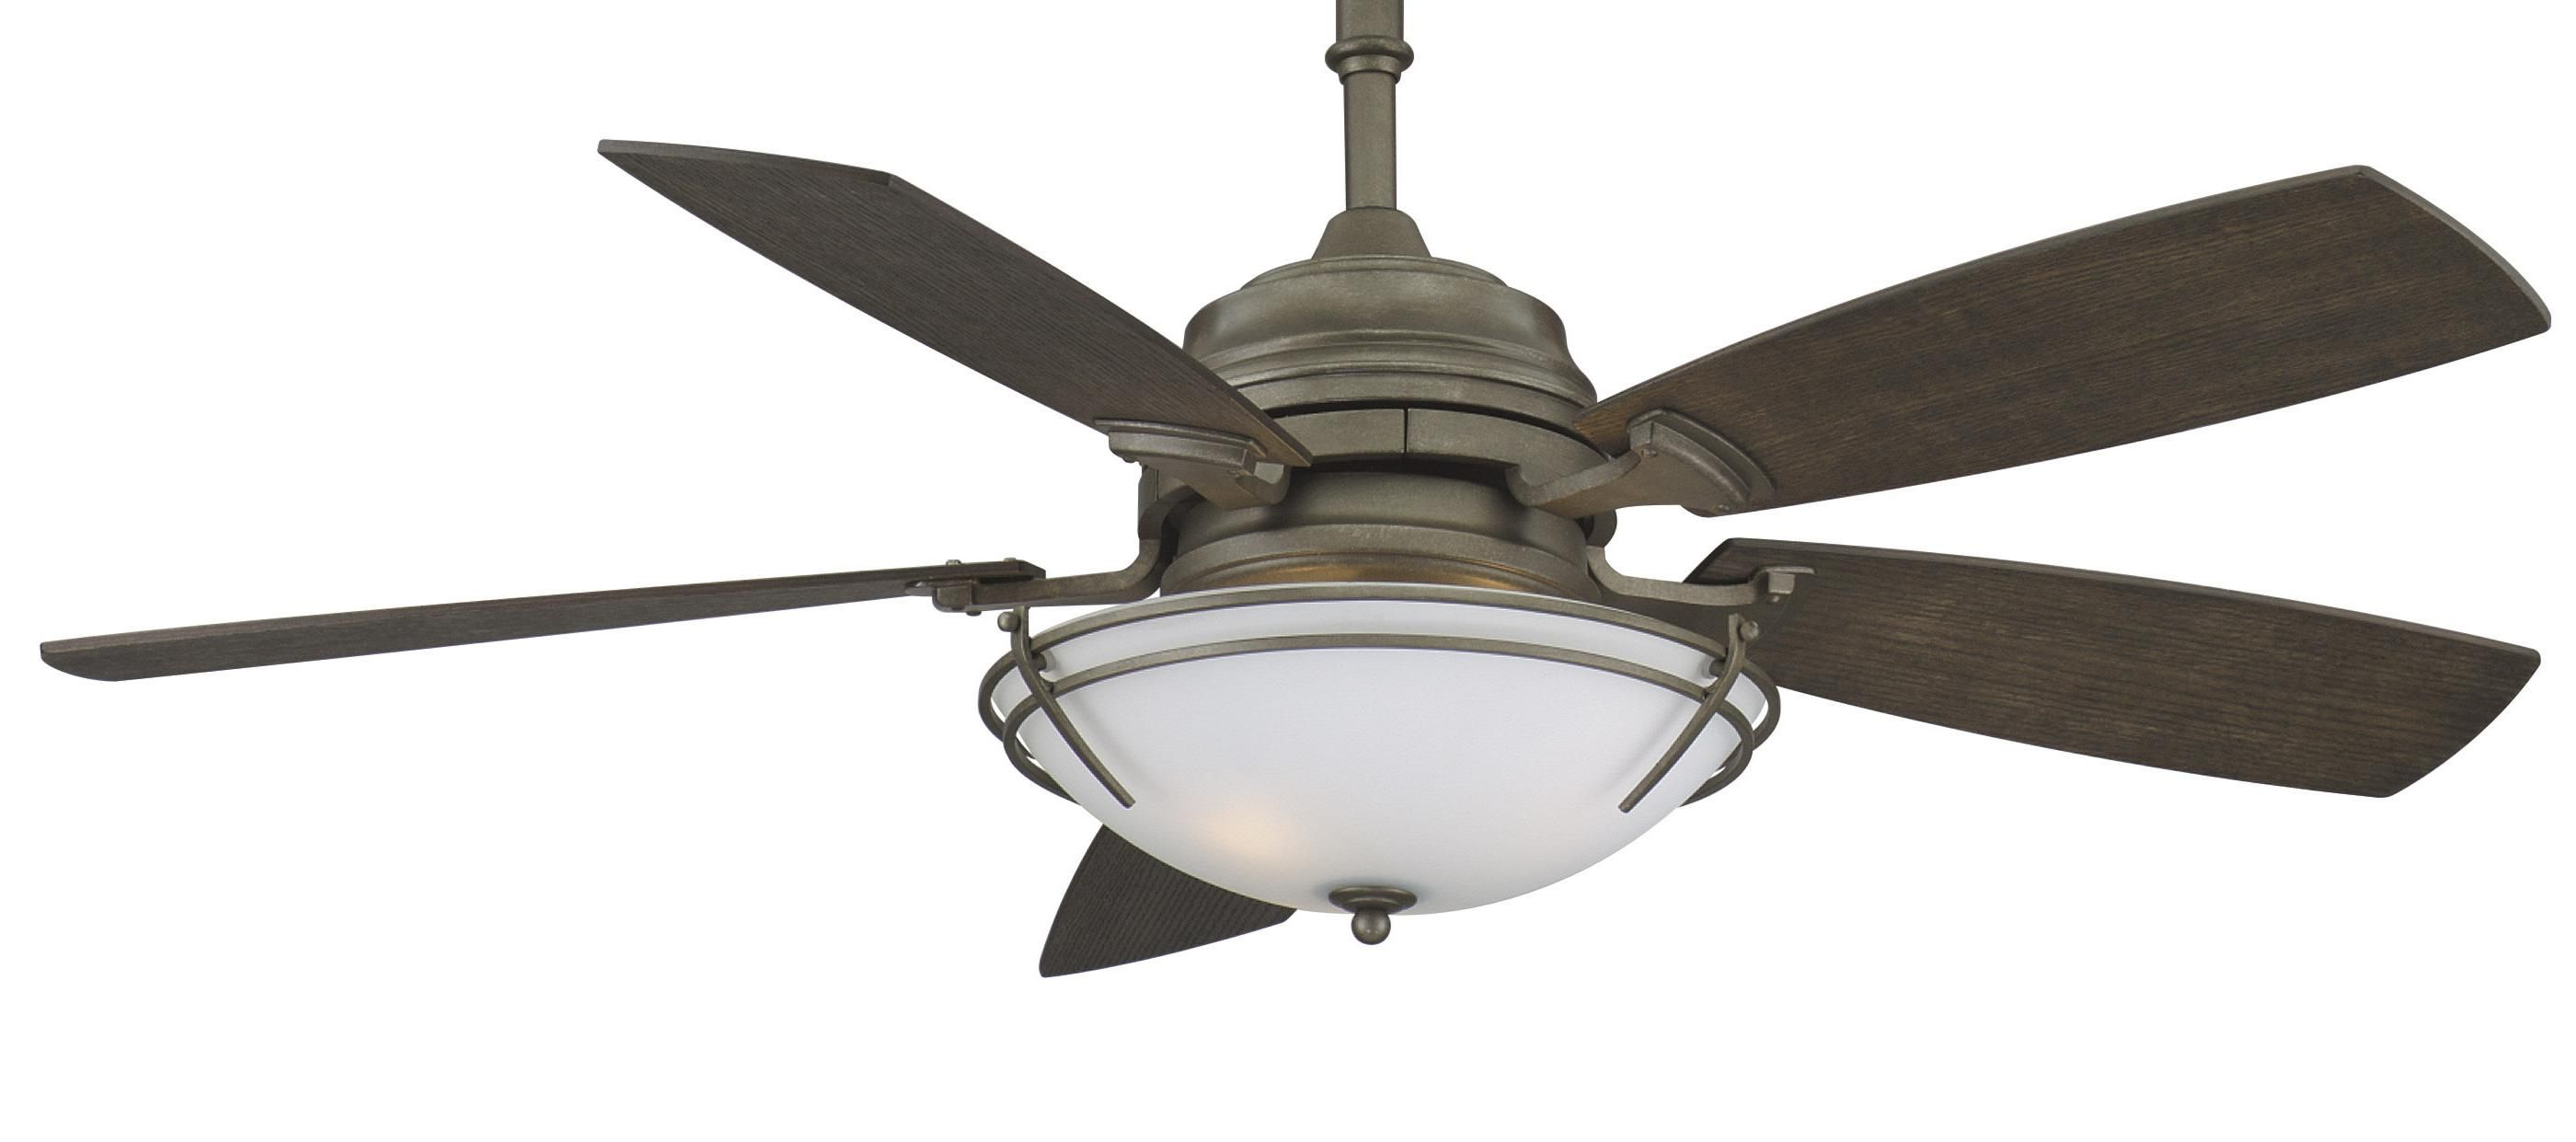 Fanimation Hubbardton Forge Presidio Tryne Hf6600ds Airflow Rating 5784 Cfm Cubic Feet Per Minut Ceiling Fan Fanimation Ceiling Fan Ceiling Fan With Light Cheap ceiling fans for sale